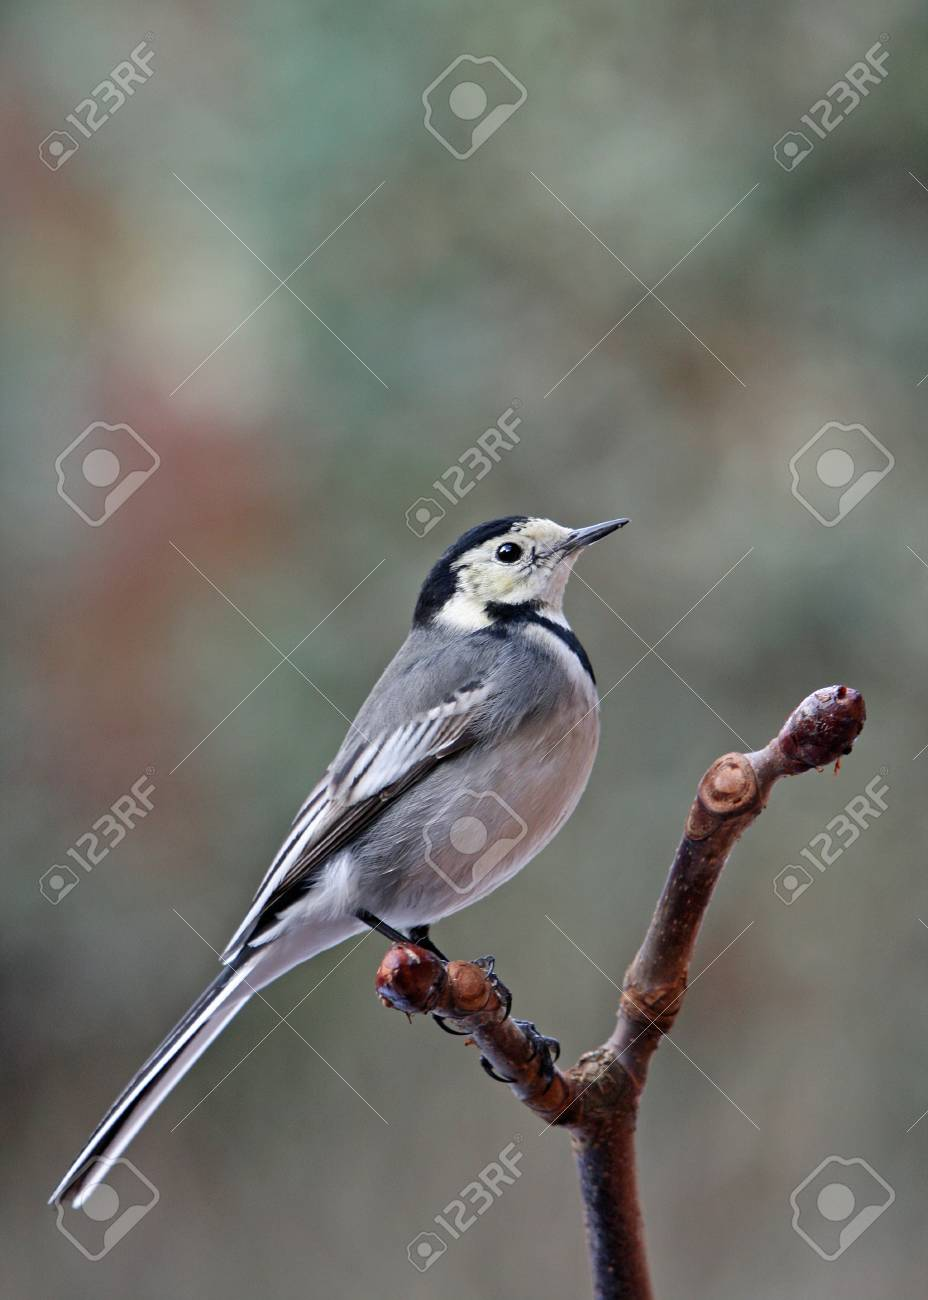 A Pied Wagtail - Motacilla alba - perched on a Horse Chestnut branch. Stock Photo - 4305318